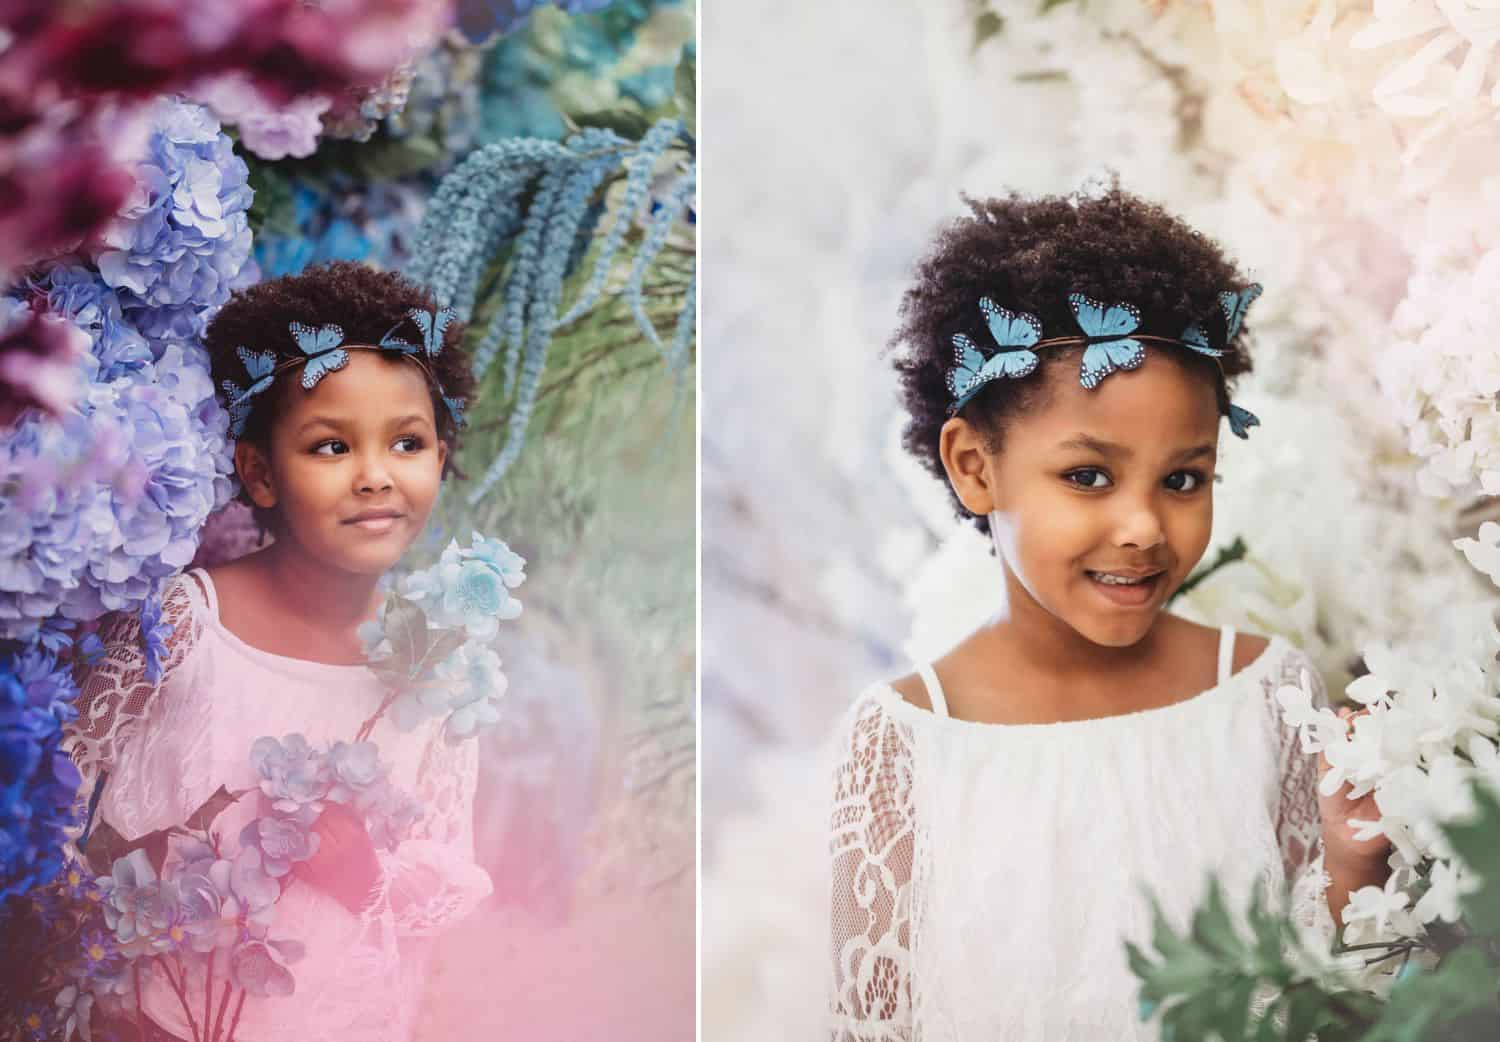 Brenda De Los Santos' photo project featuring little girls inside a Michael's store.